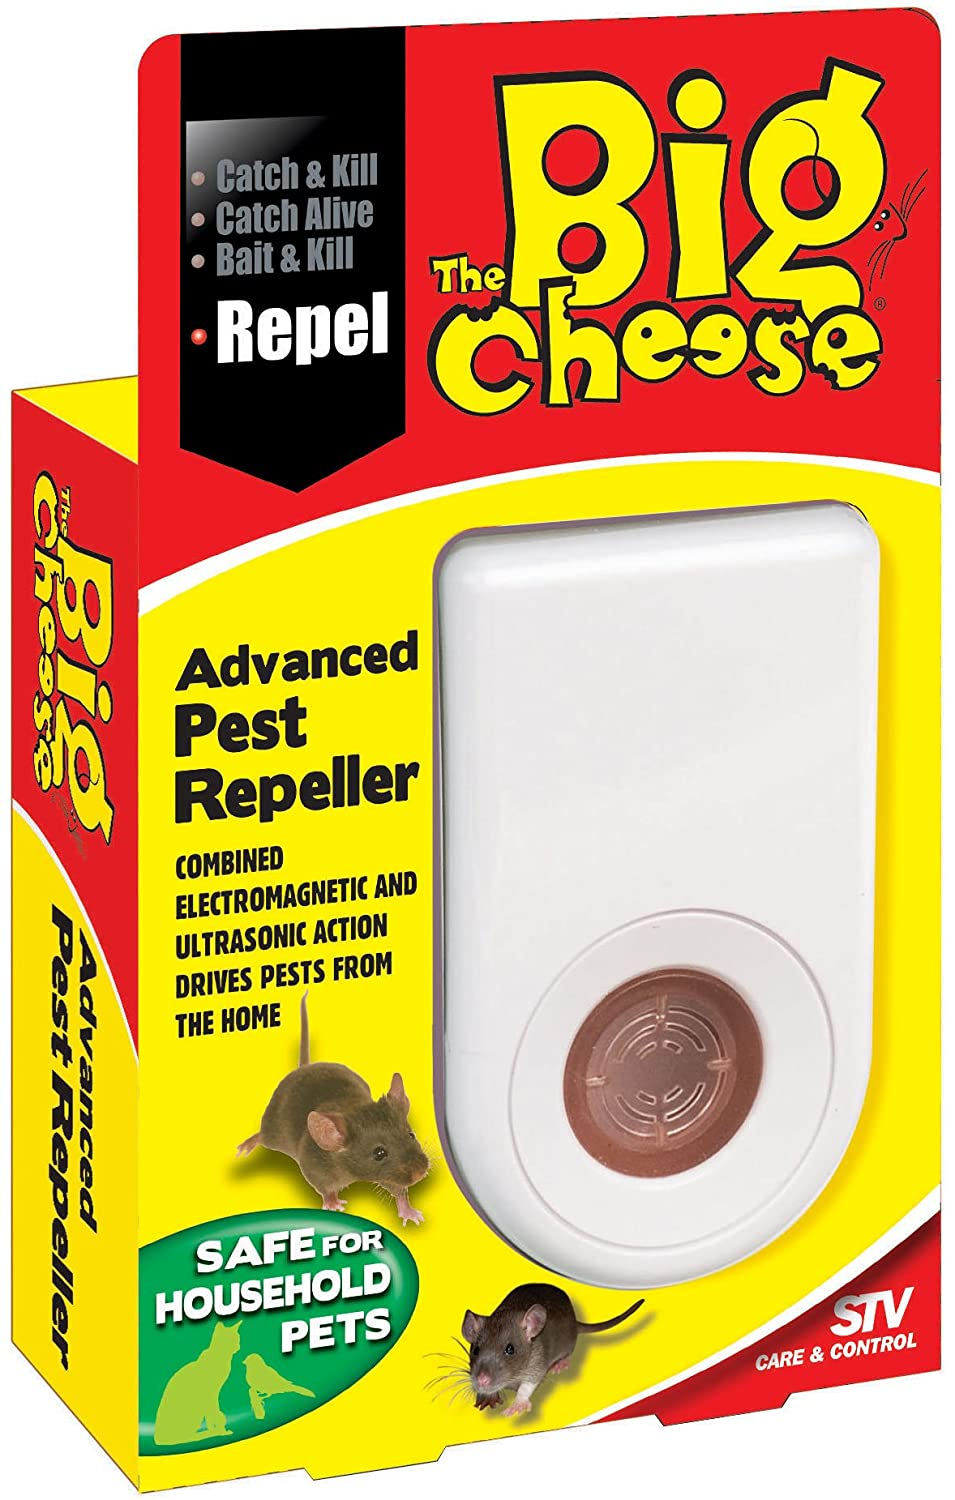 The Big Cheese Advanced Pest Repeller (Humane, Ultra-Sound, Electromagnetic Rodent Pest Deterrent Repels Rats and Mice from the Home, Pulses Through Wiring to Reach Within Walls and Ceilings) STV International STV789 Pest control Protection